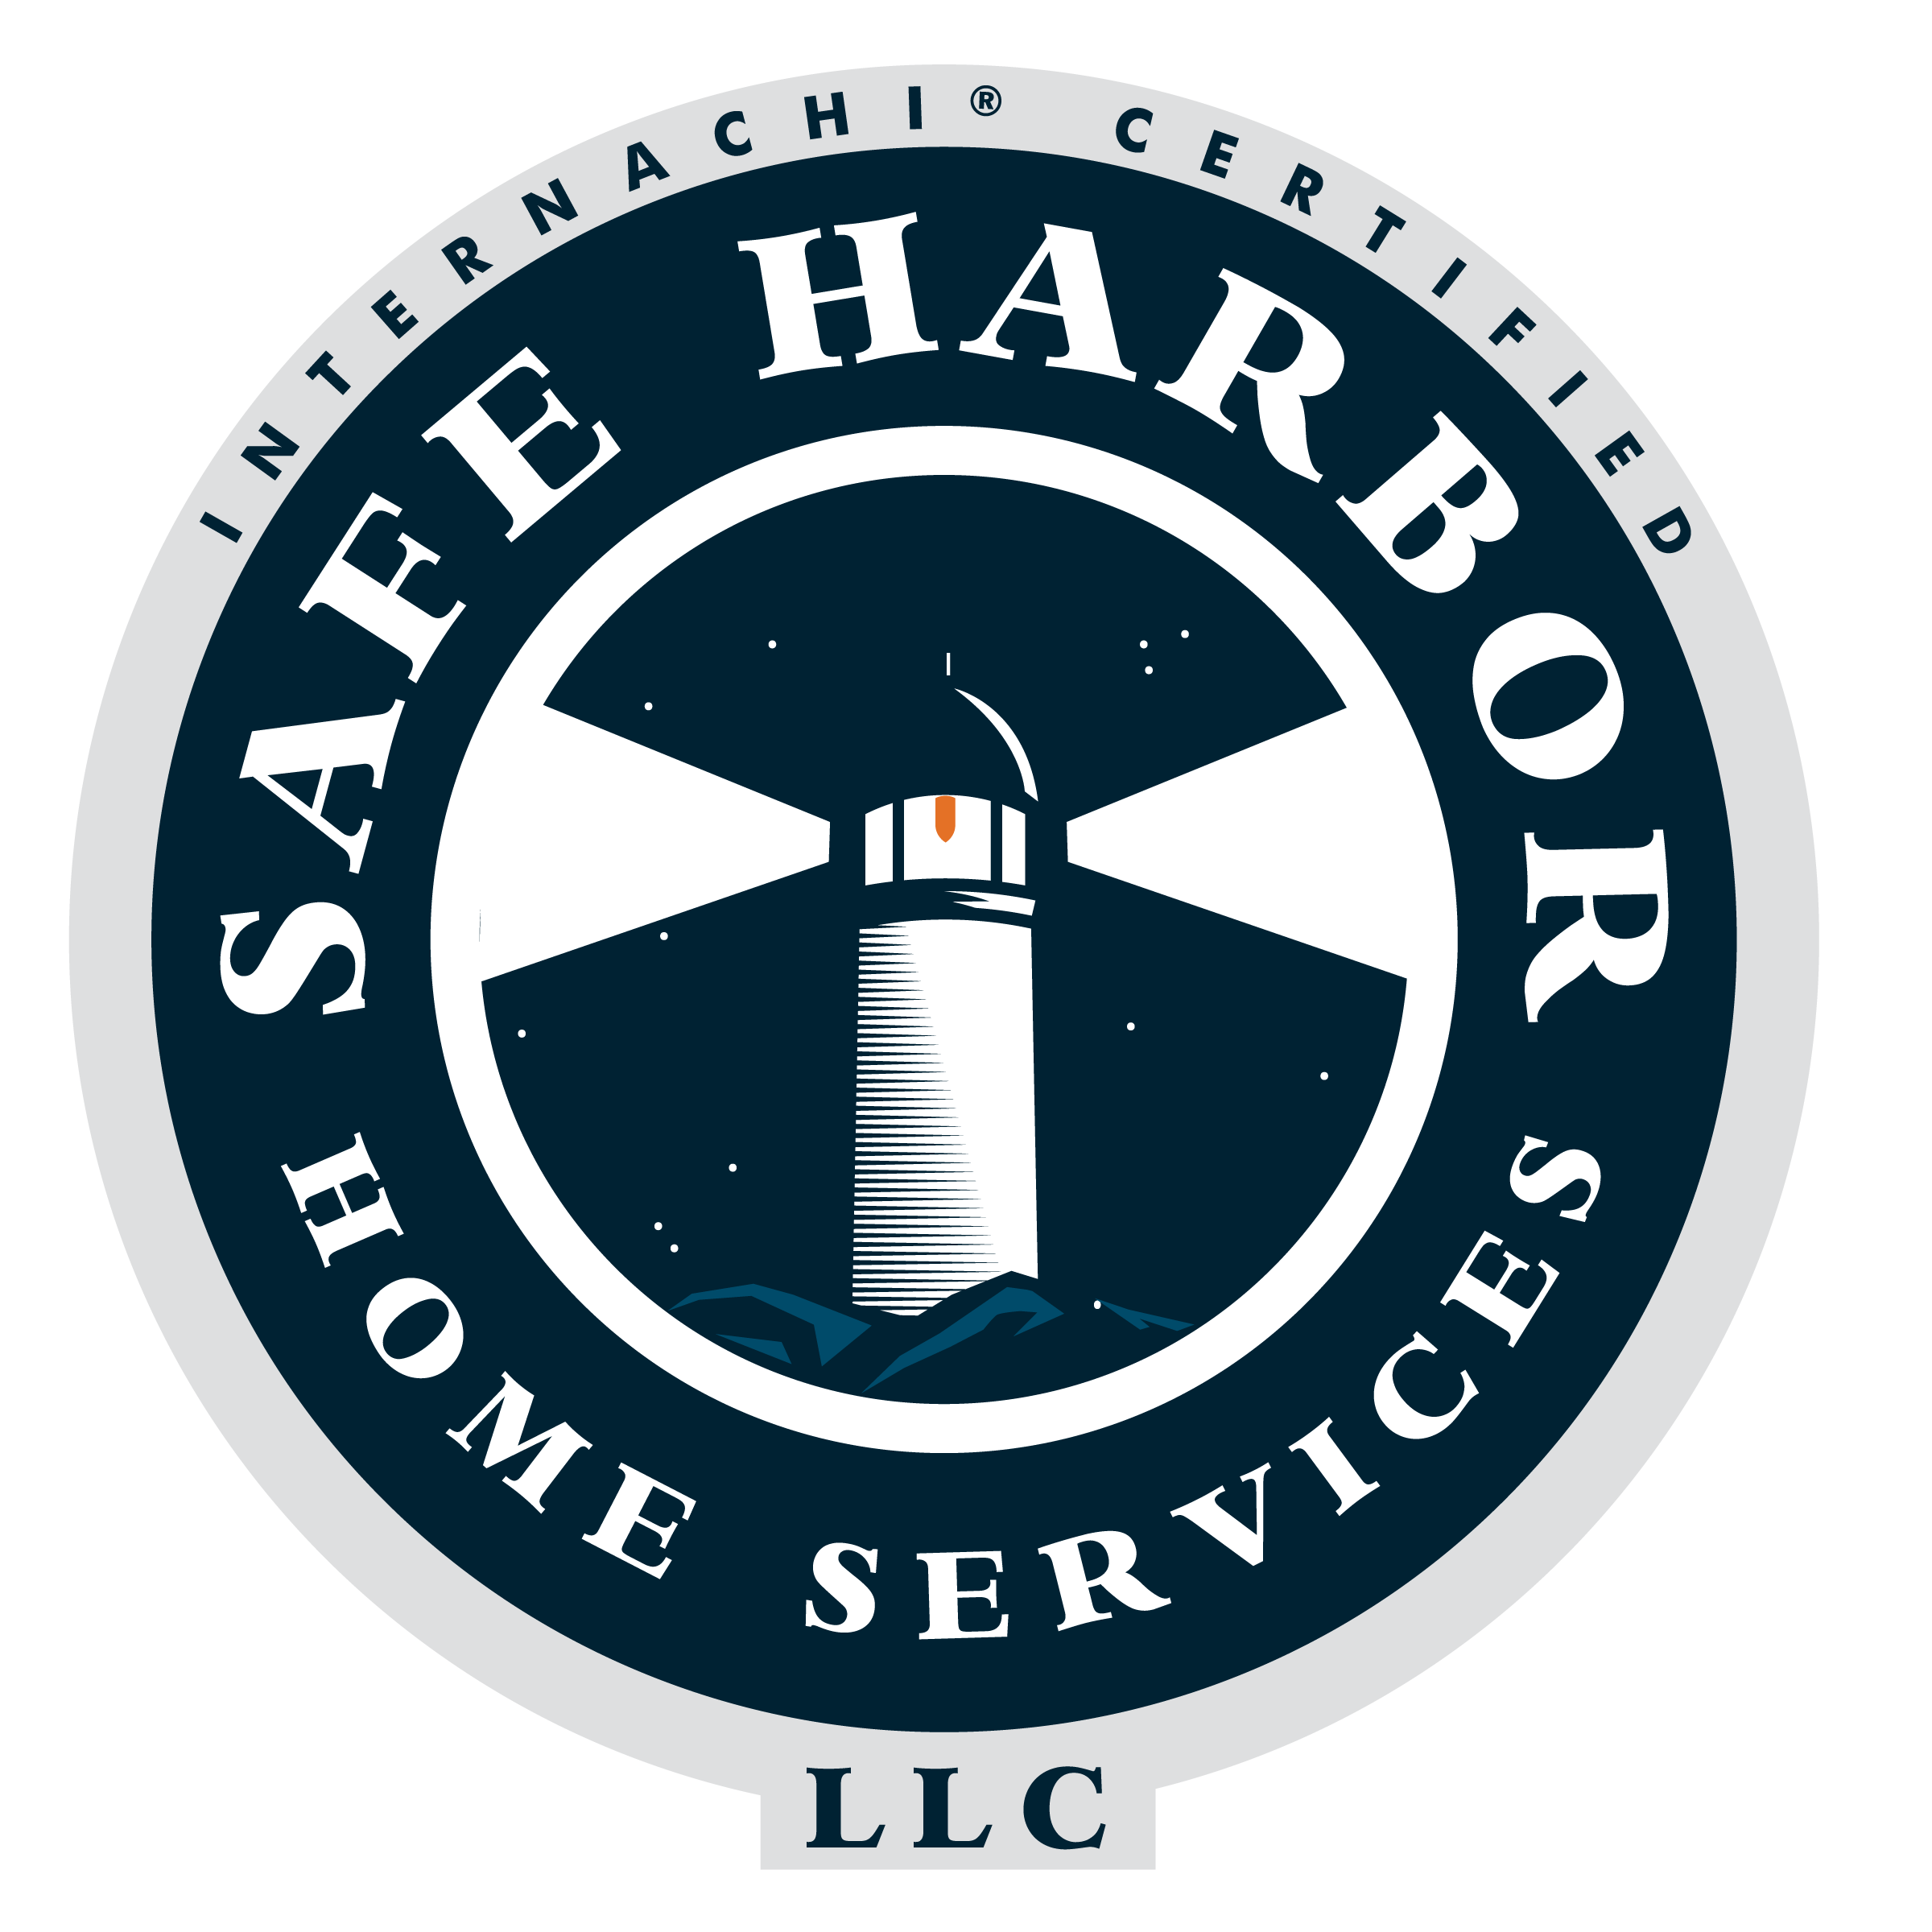 Safe harbor home inspection logo